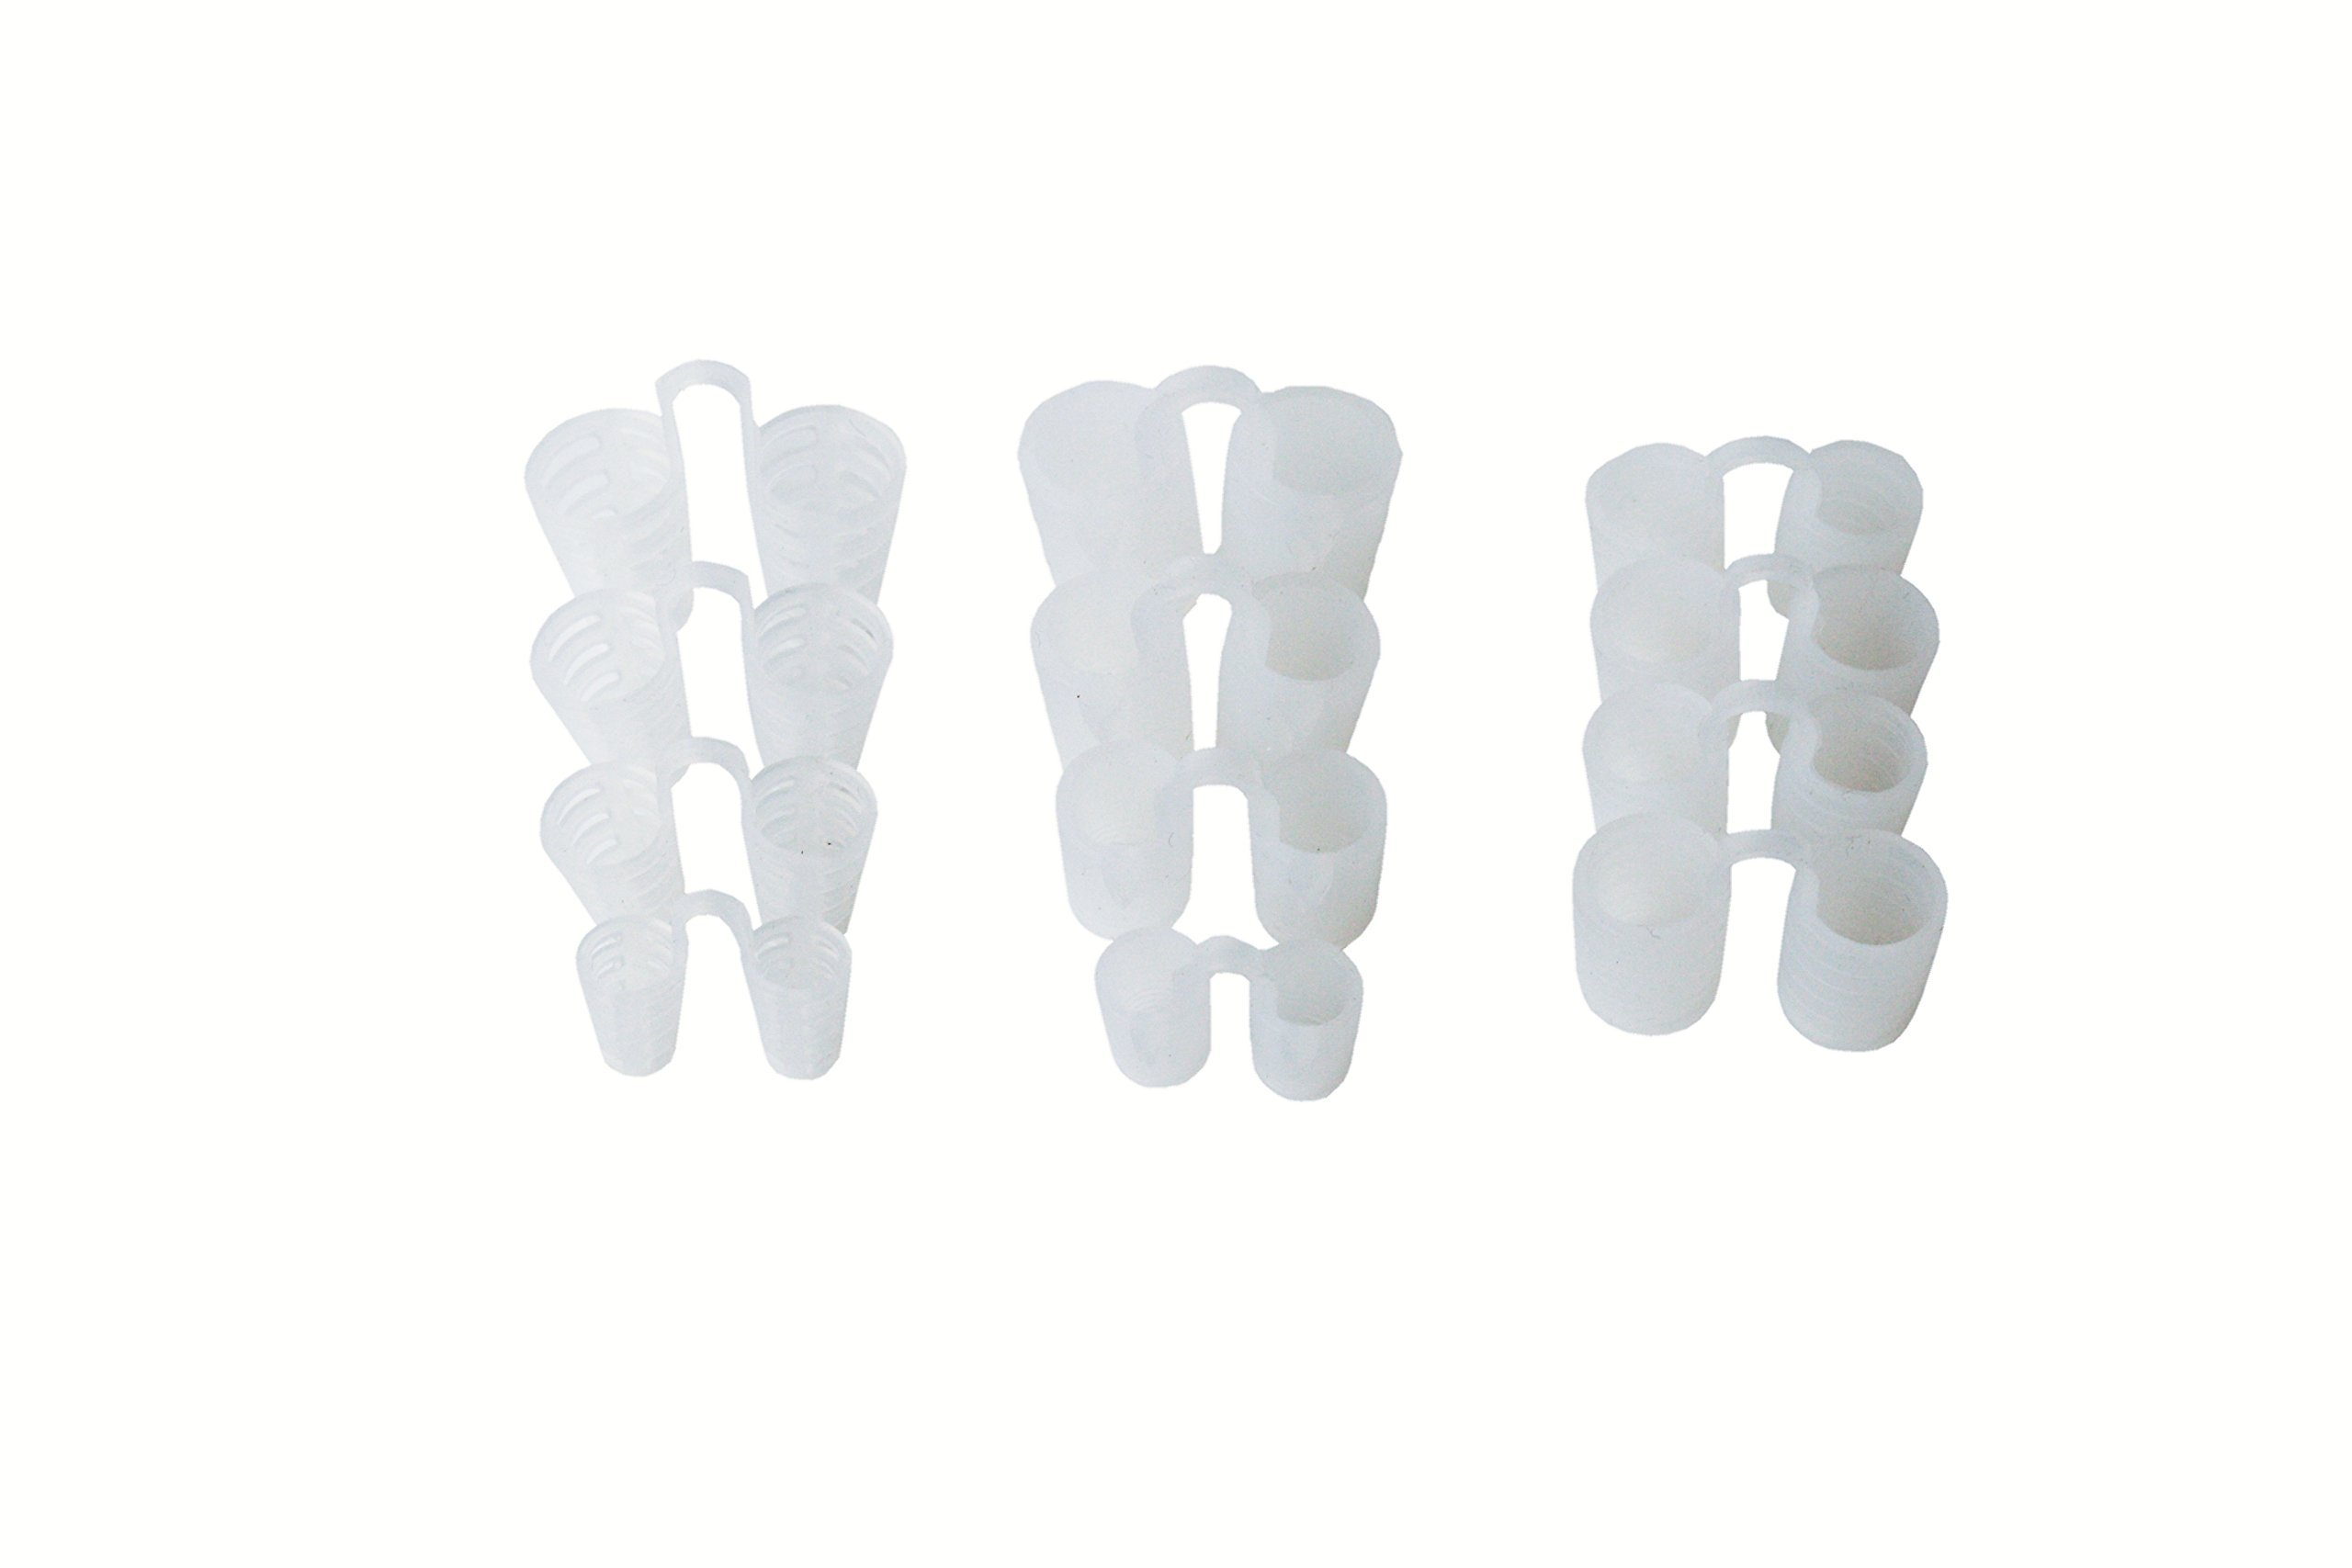 Anti-Snoring Nose Vent Set By Snore Bastion - Set Of 12 - Premium Quality Medical Grade Silicone - Instant Natural Snore Relief - Facilitates Airflow In The Nasal Passageways To Ease Breathing by Snore Bastion (Image #8)